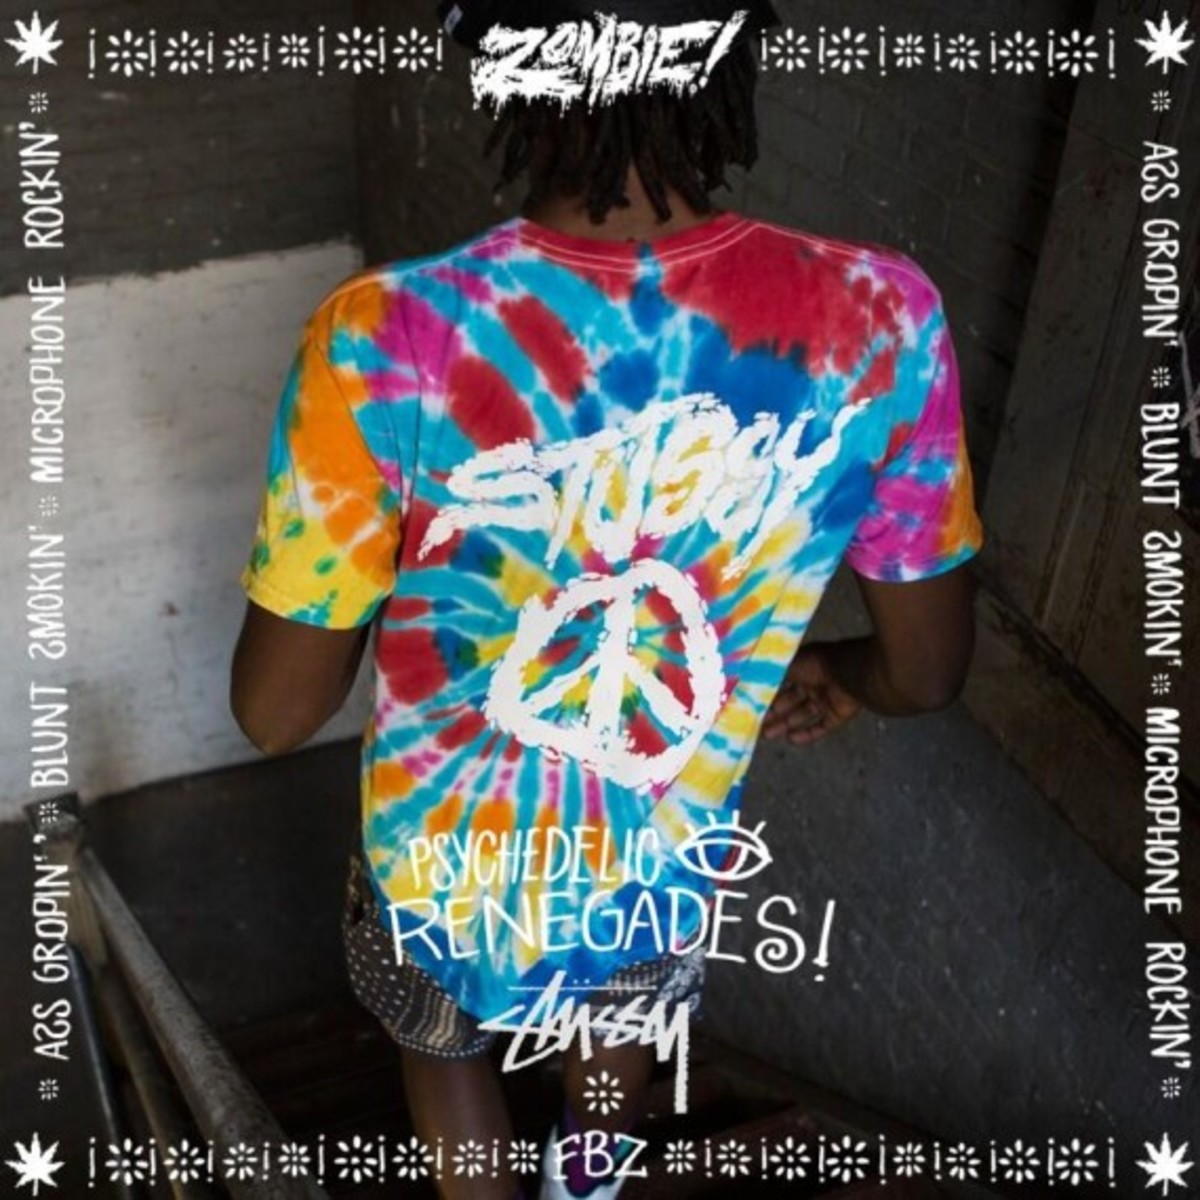 Stussy X Flatbush Zombies Capsule Collection Freshness Mag